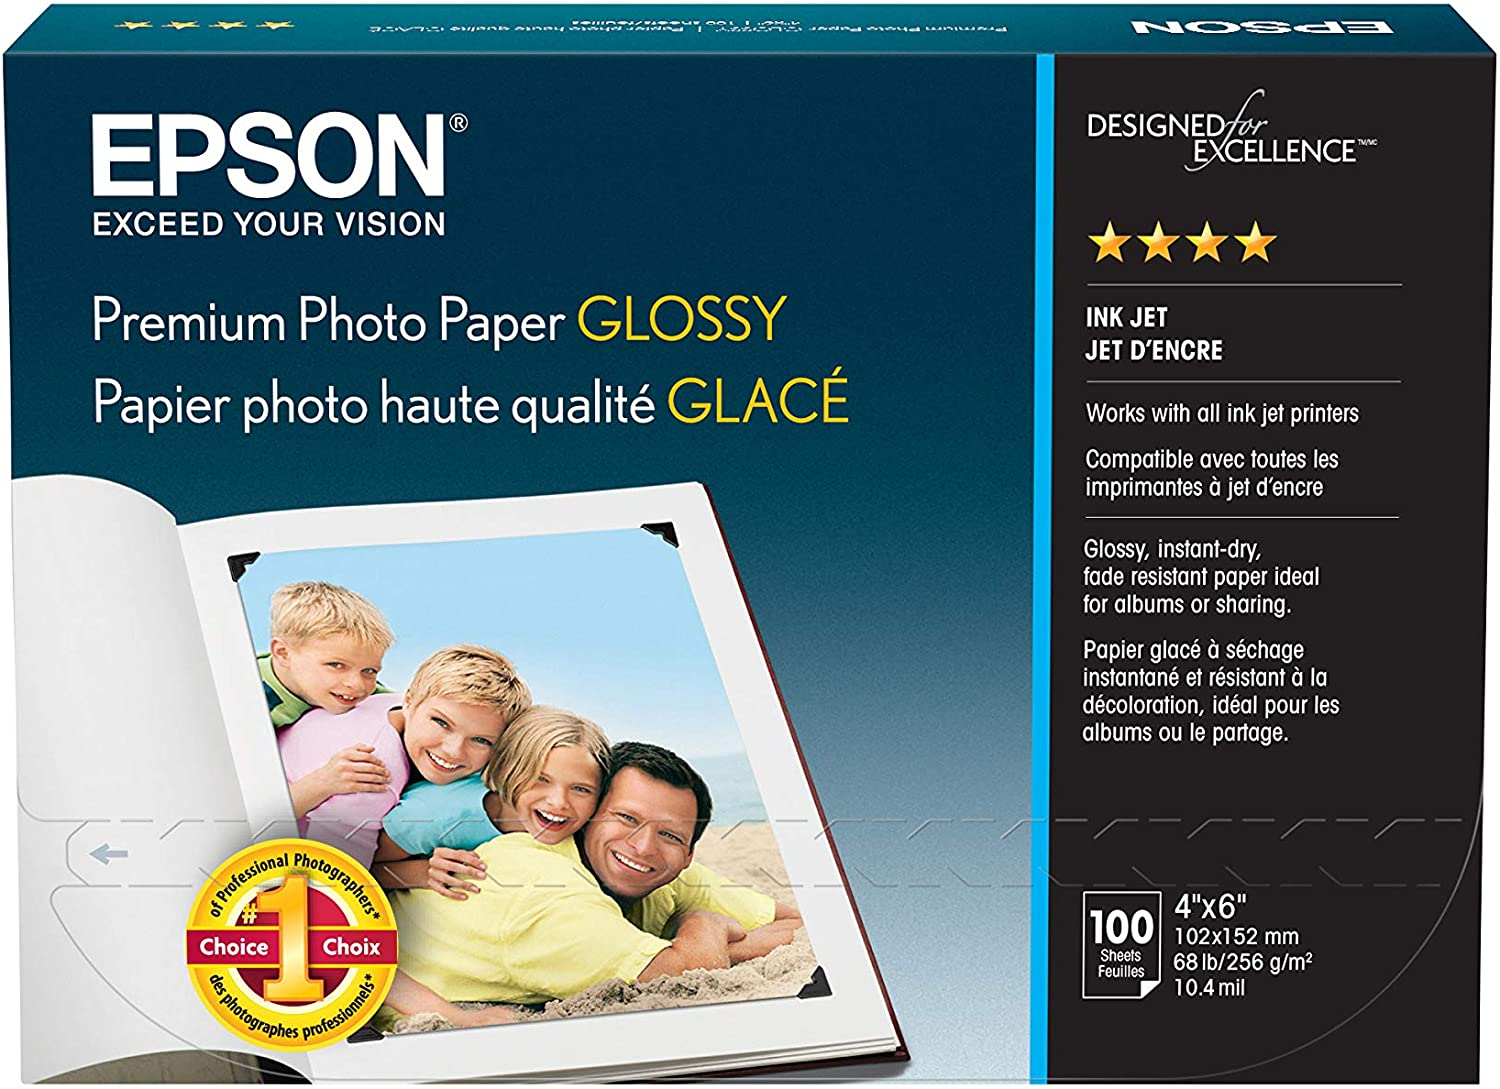 Epson S041727 Premium Photo Paper, 68 lbs., High-Gloss, 4 x 6 (Pack of 100 Sheets),White